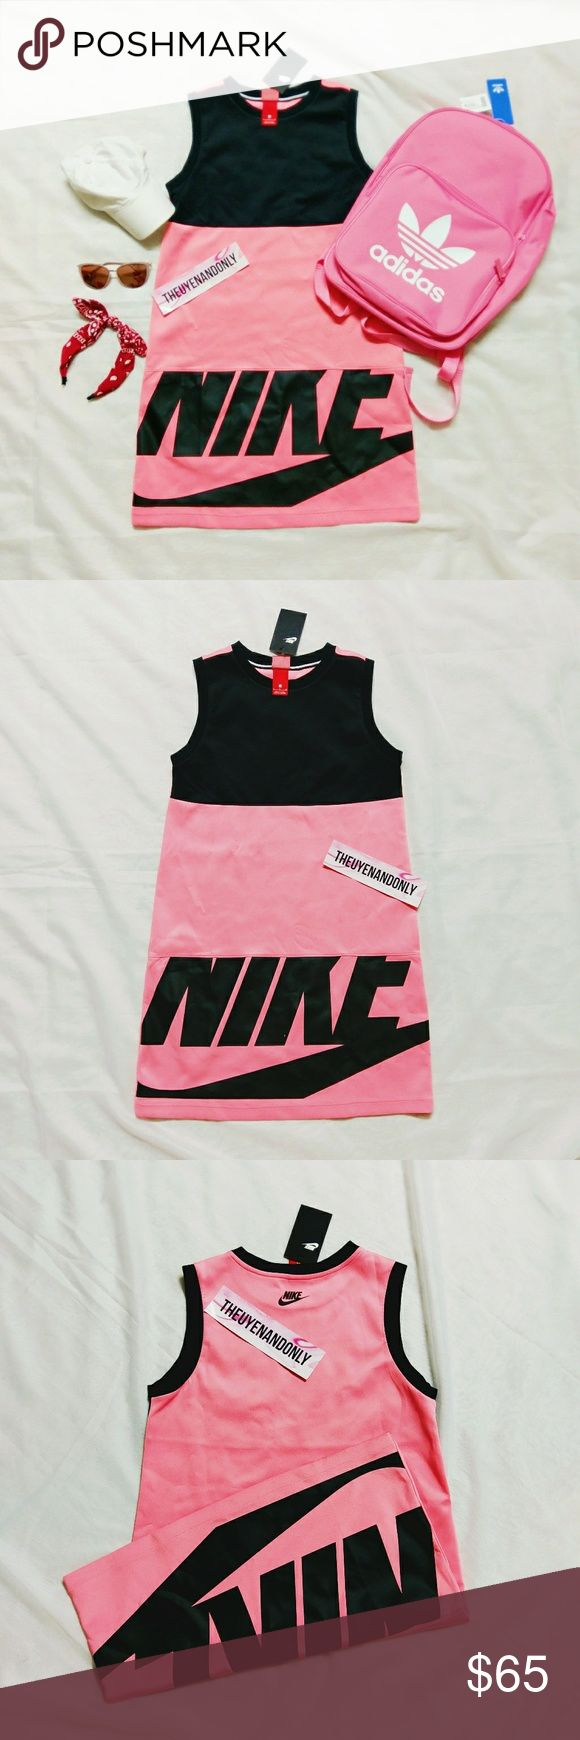 *SALE* NWT *RARE* Nike Irreverent Tank Dress Pink NEW WITH TAG  Women's Nike Irreverent Tank Dress  A Women's Nike Irreverent Dress made with stretch fleece fabric, Lightweight, Wide armholes coverage, High neckline, Relaxed fit, and Large Nike logo at front hem. 92% Polyester. 8% Spandex.  Style ID: 843484-010 Imported 92% Polyester. 8% Spandex  ONLY ONE AVAILABLE PRICE IS FIRM DURING SALE  ***** LISTING IS FOR DRESS ONLY. ACCESSORIES AND BACKPACK ARE NOT INCLUDED ****** Nike Dresses Mini